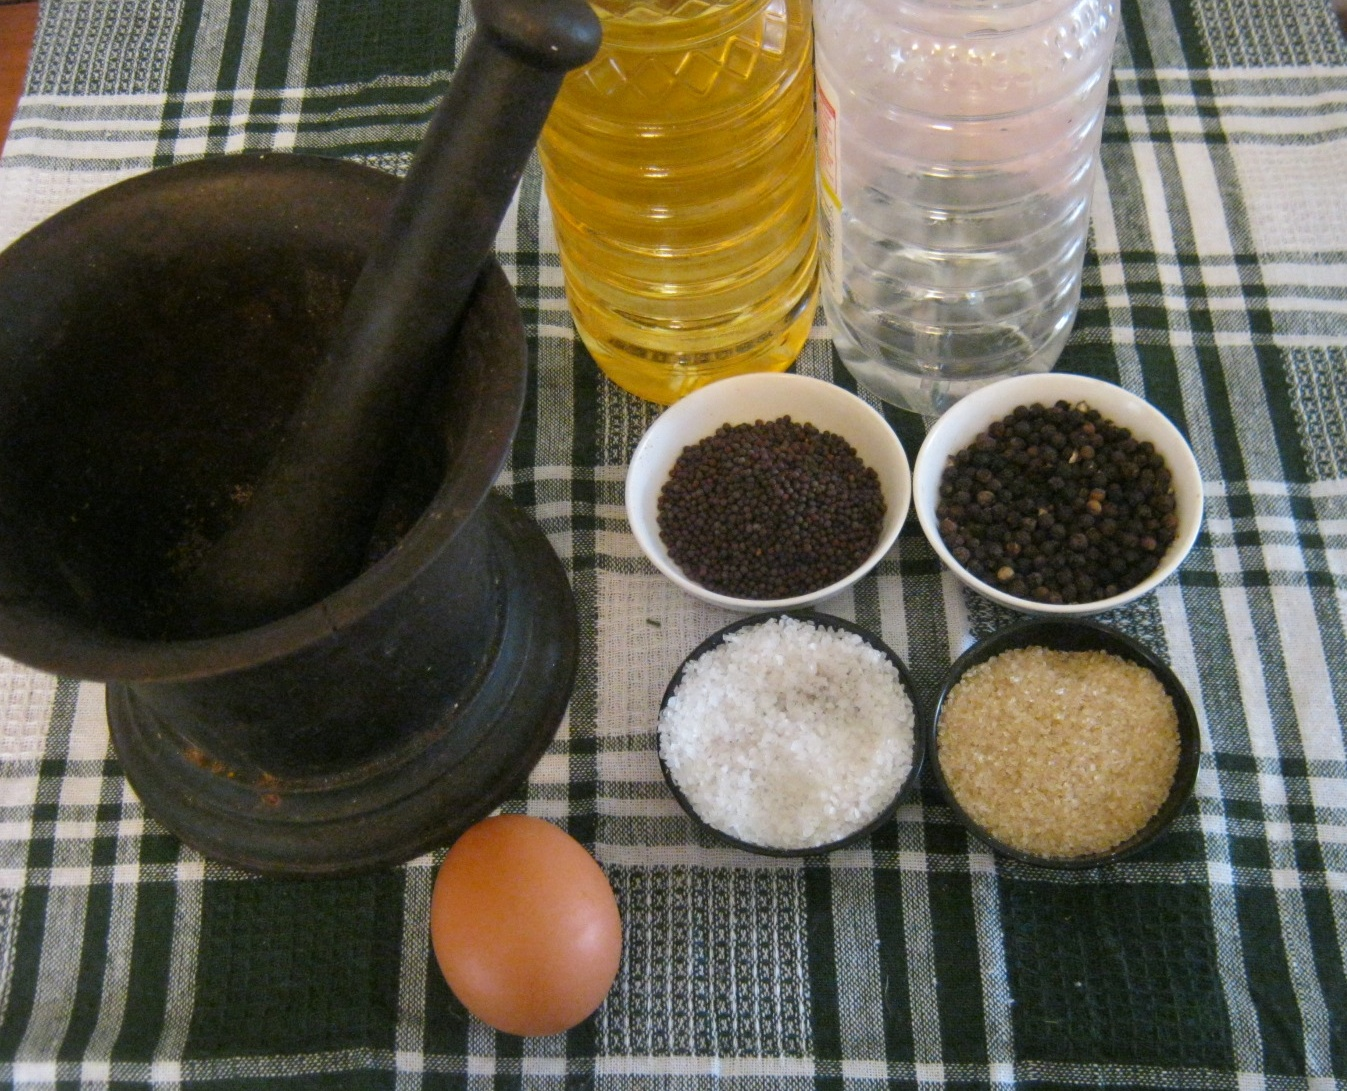 Ingredients  for homemade mayonaise recipe